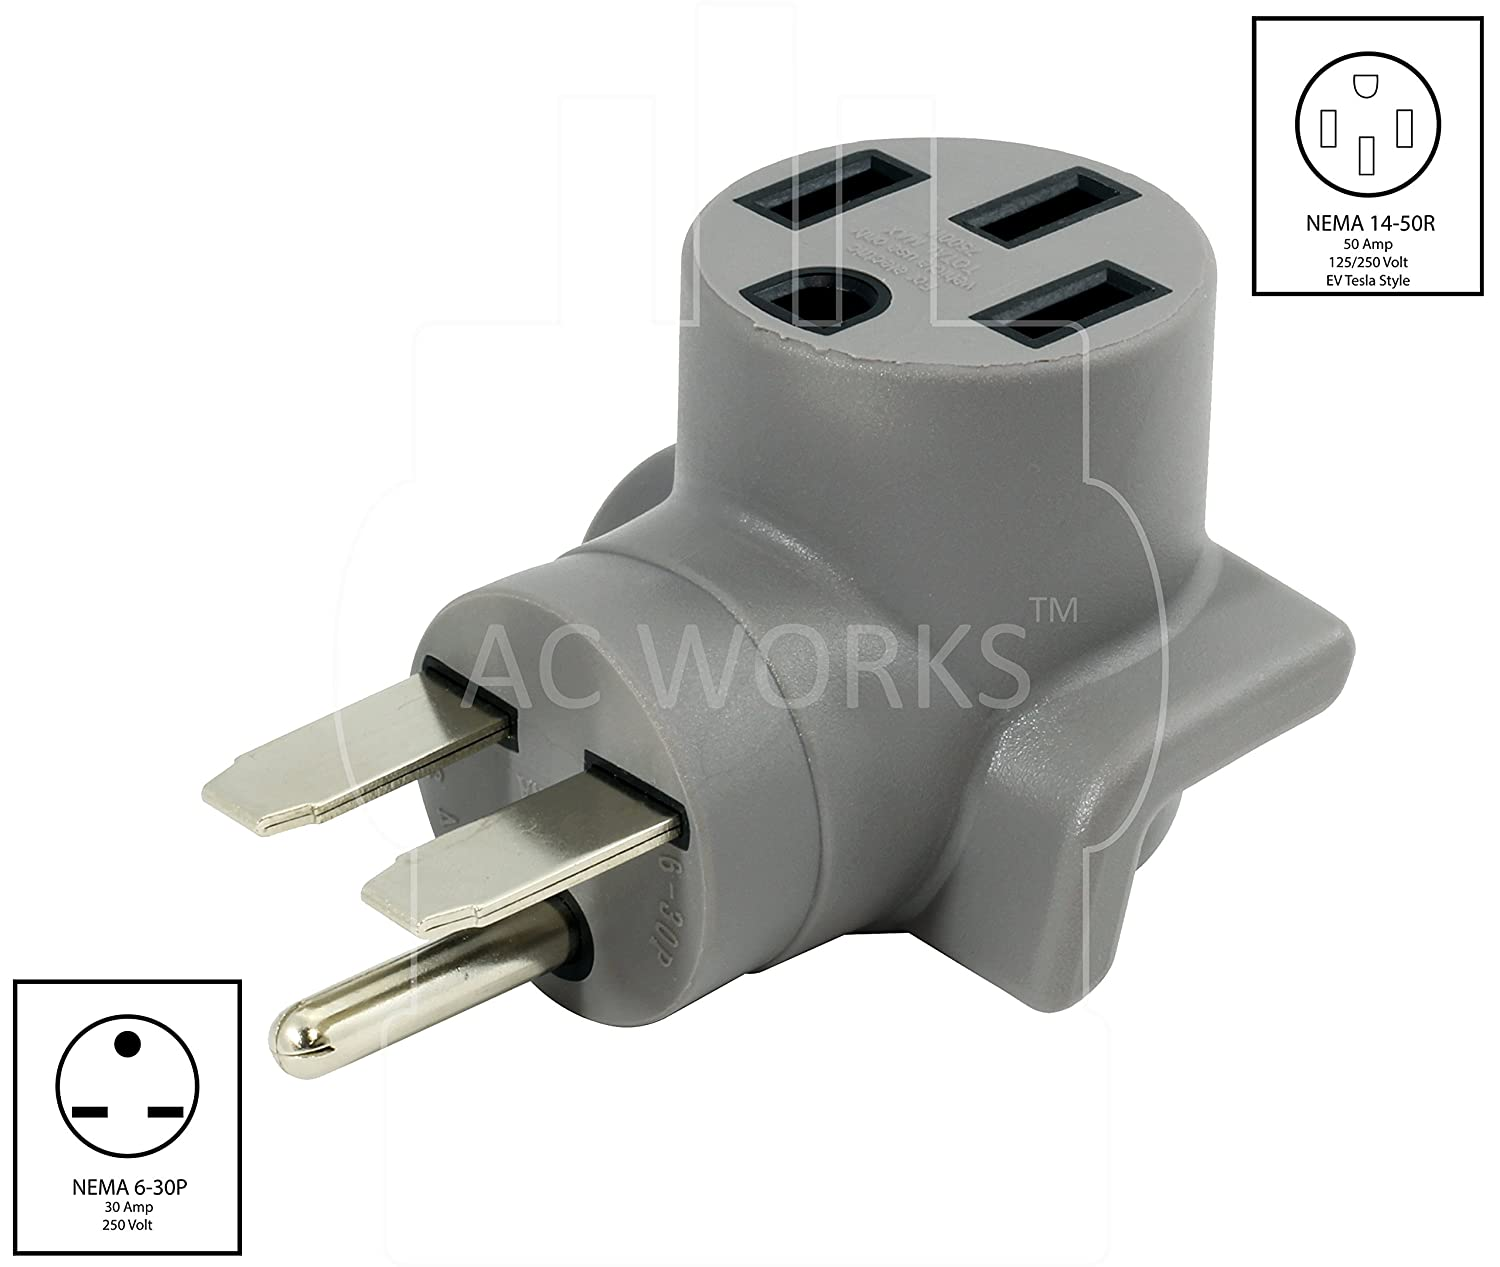 Ac Works Ev Charging Adapter For Tesla Use 6 30 30a 250v Unit To 50 Rv Wiring Diagram On Amp